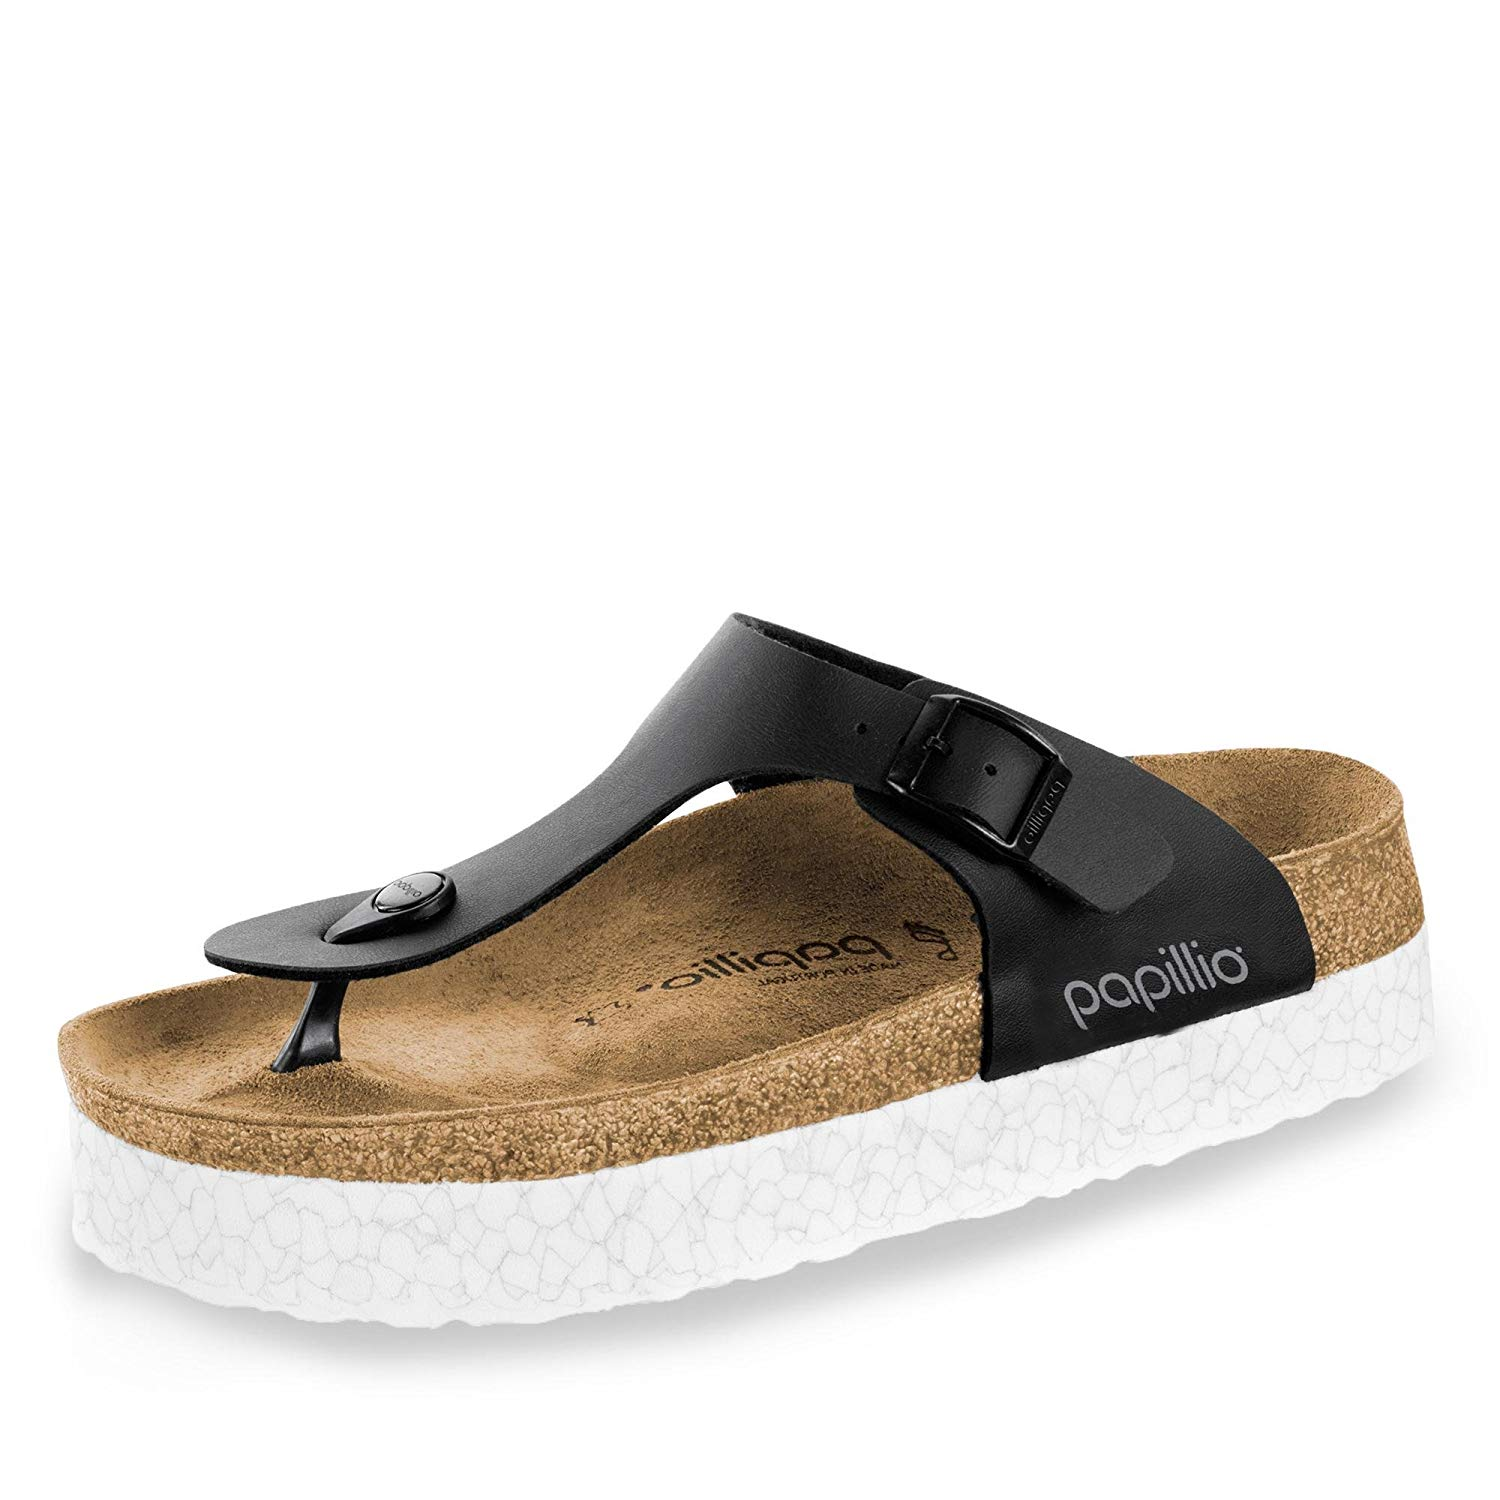 17e5548c32 Get Quotations · Papillio Gizeh Birko-Flor Monochrome Marble - The Shoe for  Women, Made from Birko